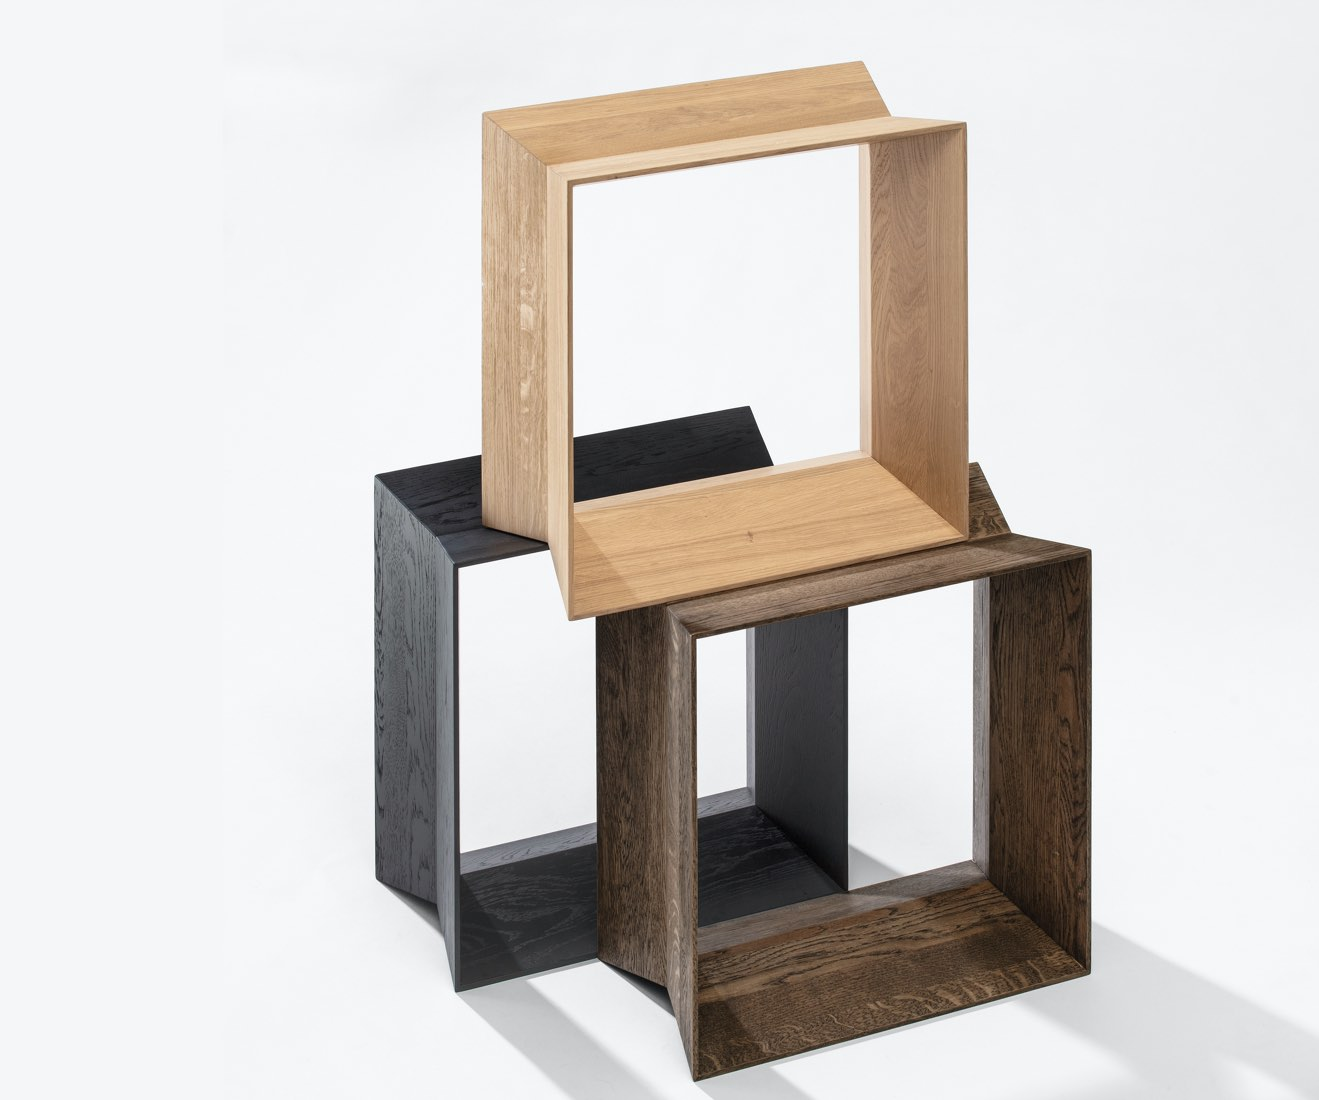 Motarasu Products - Reflex Stool in Natural, Black and Black Oil by Akiko Ken Made